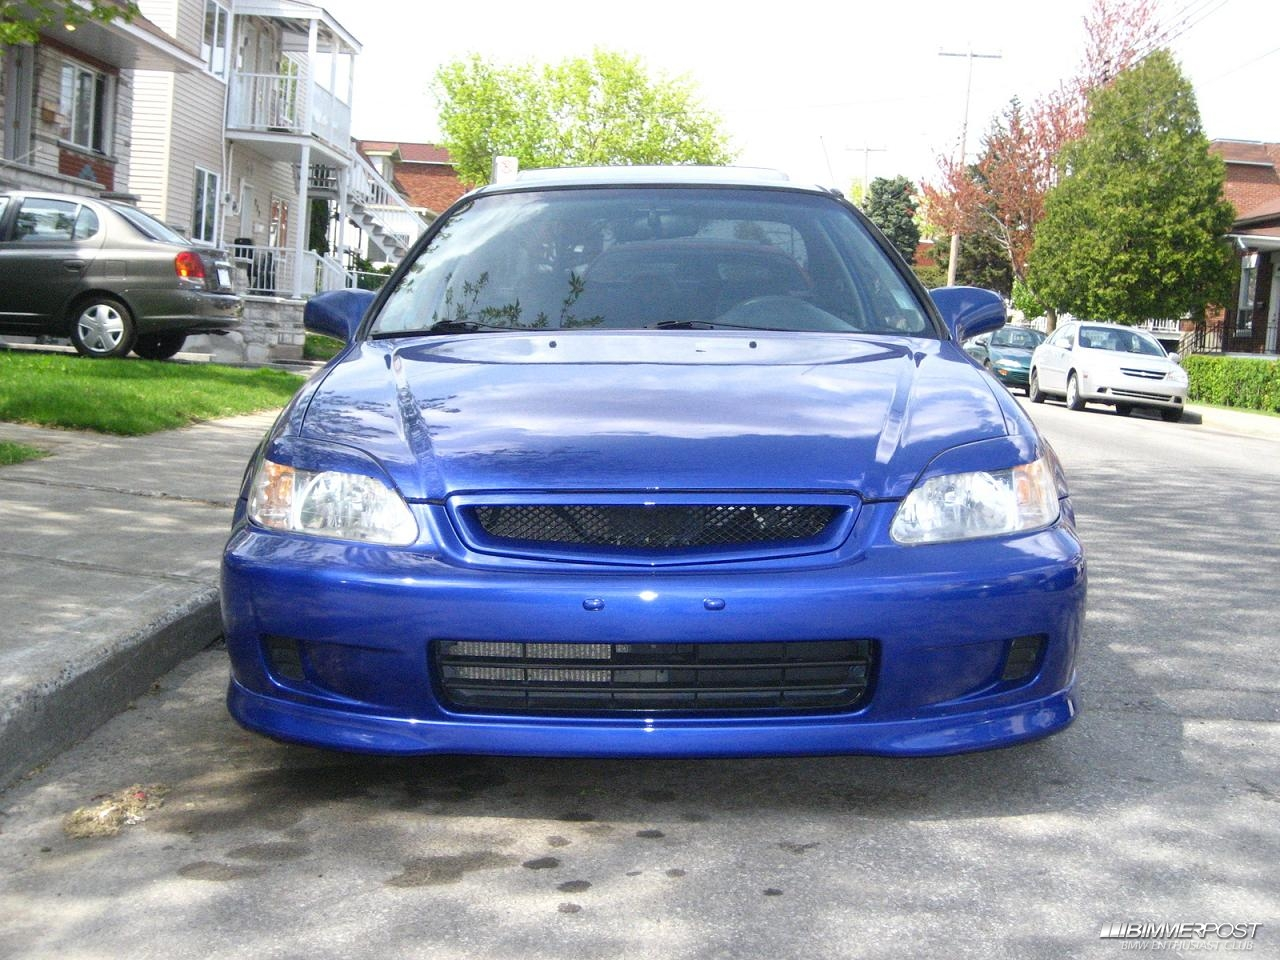 Kevco's 2000 Honda Civic SI - BIMMERPOST Garage